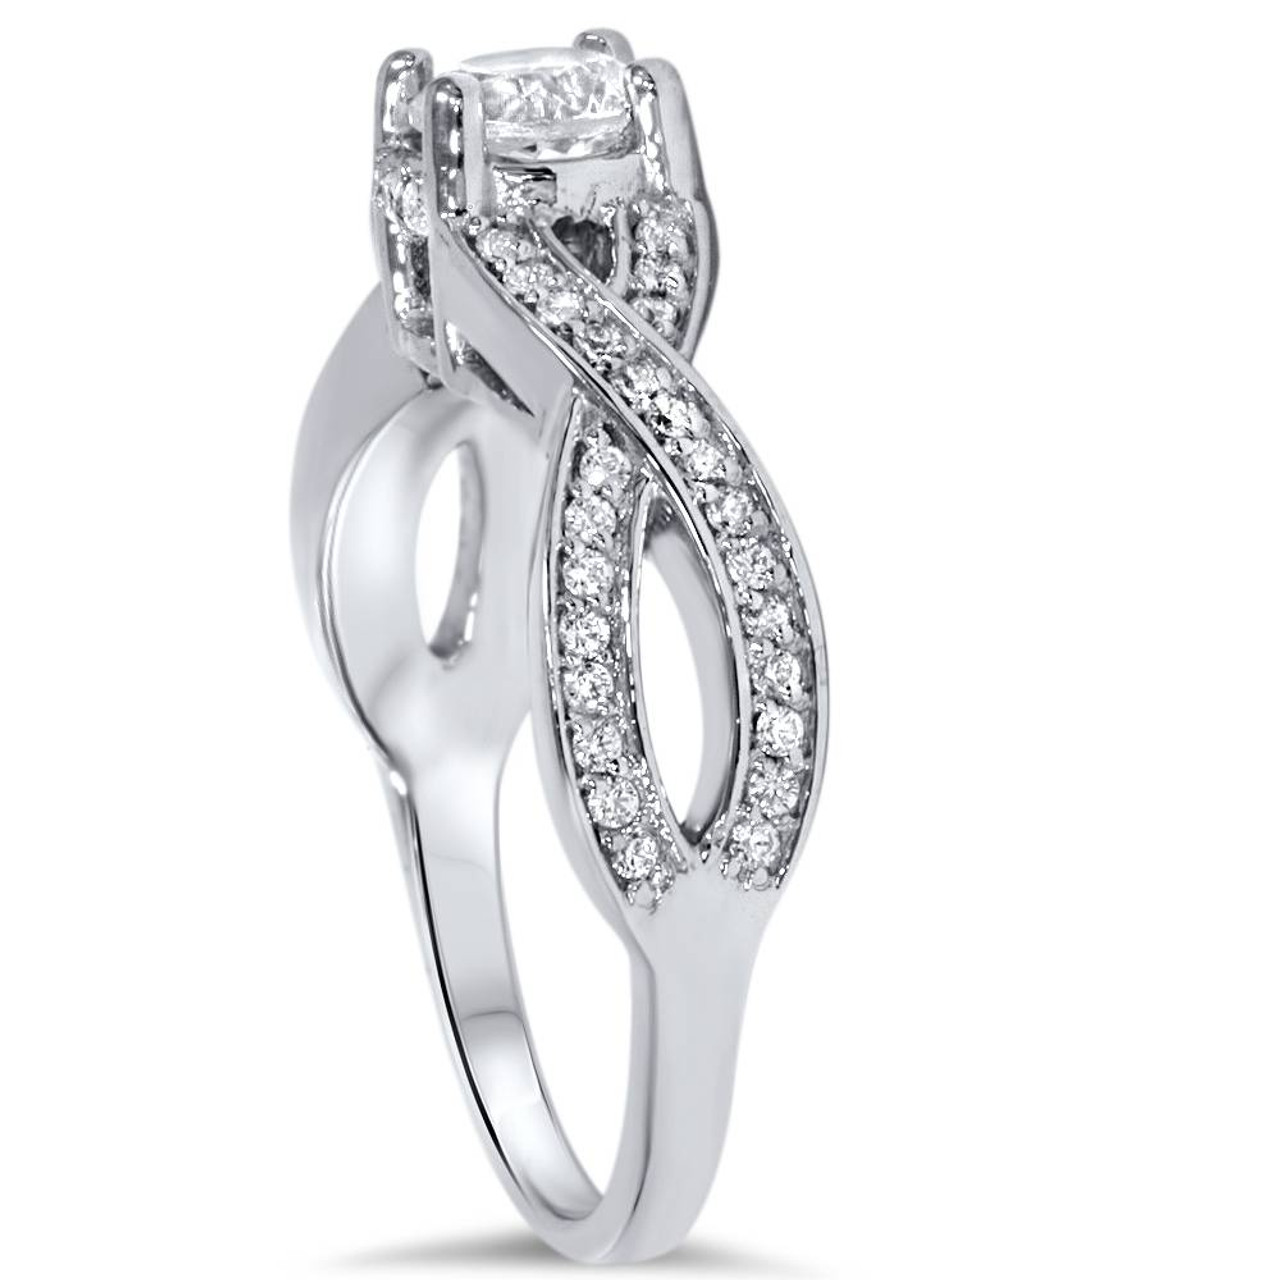 na twist ring engagement rd novel ww infinity edwin jewelry ri di design